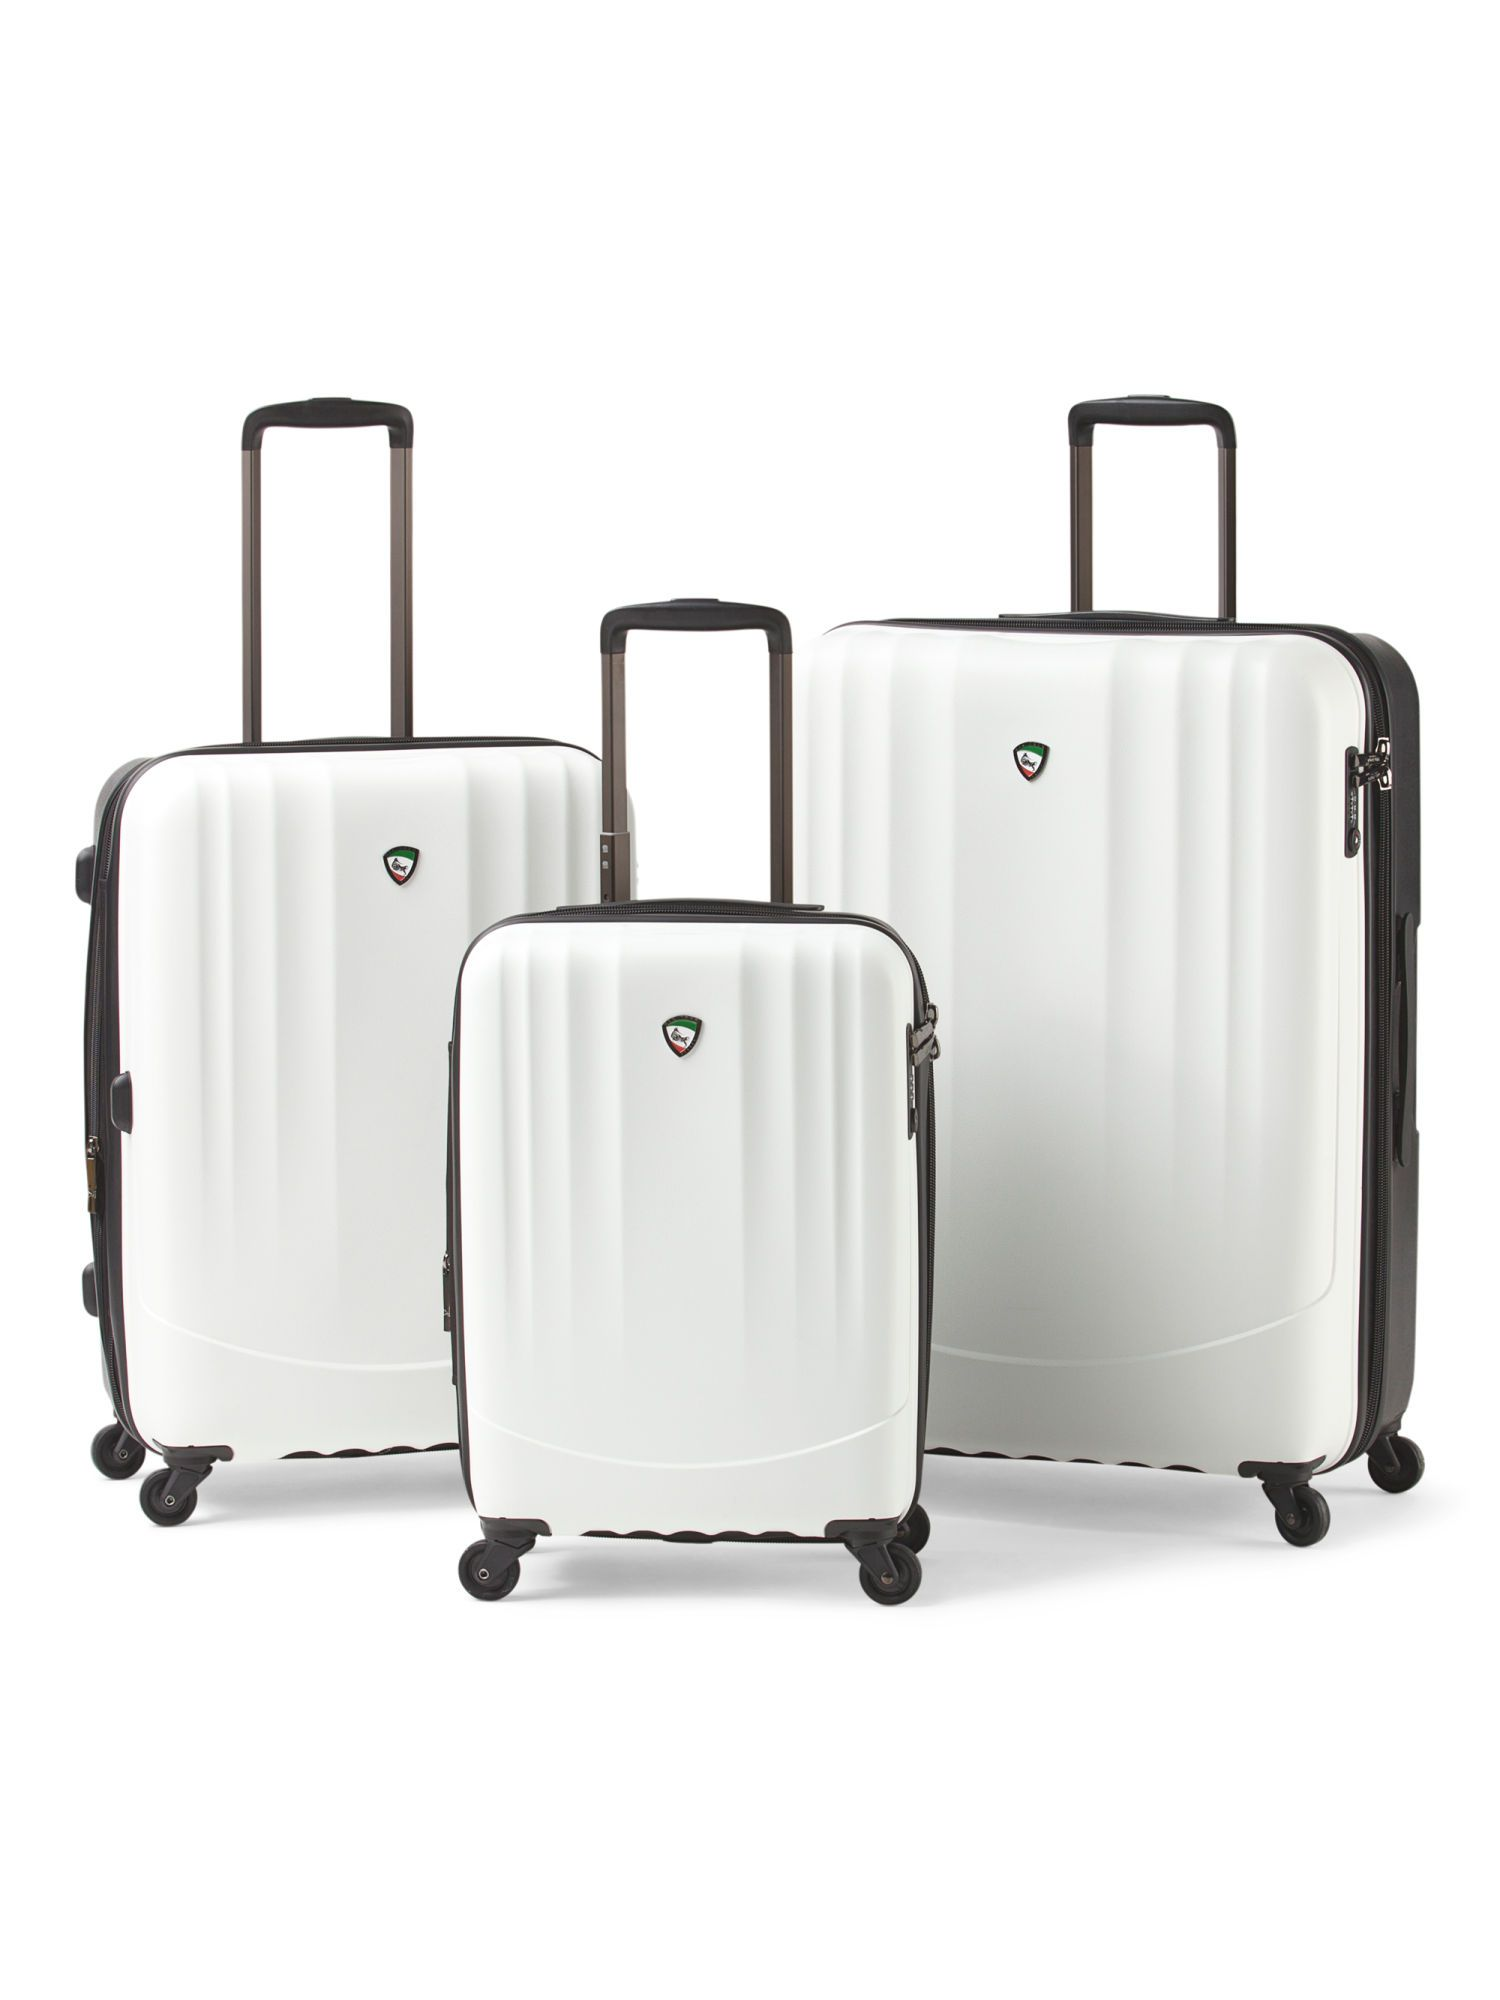 09565f09aa5c Mia Toro Italy Expandable Hardside Spinner Collection